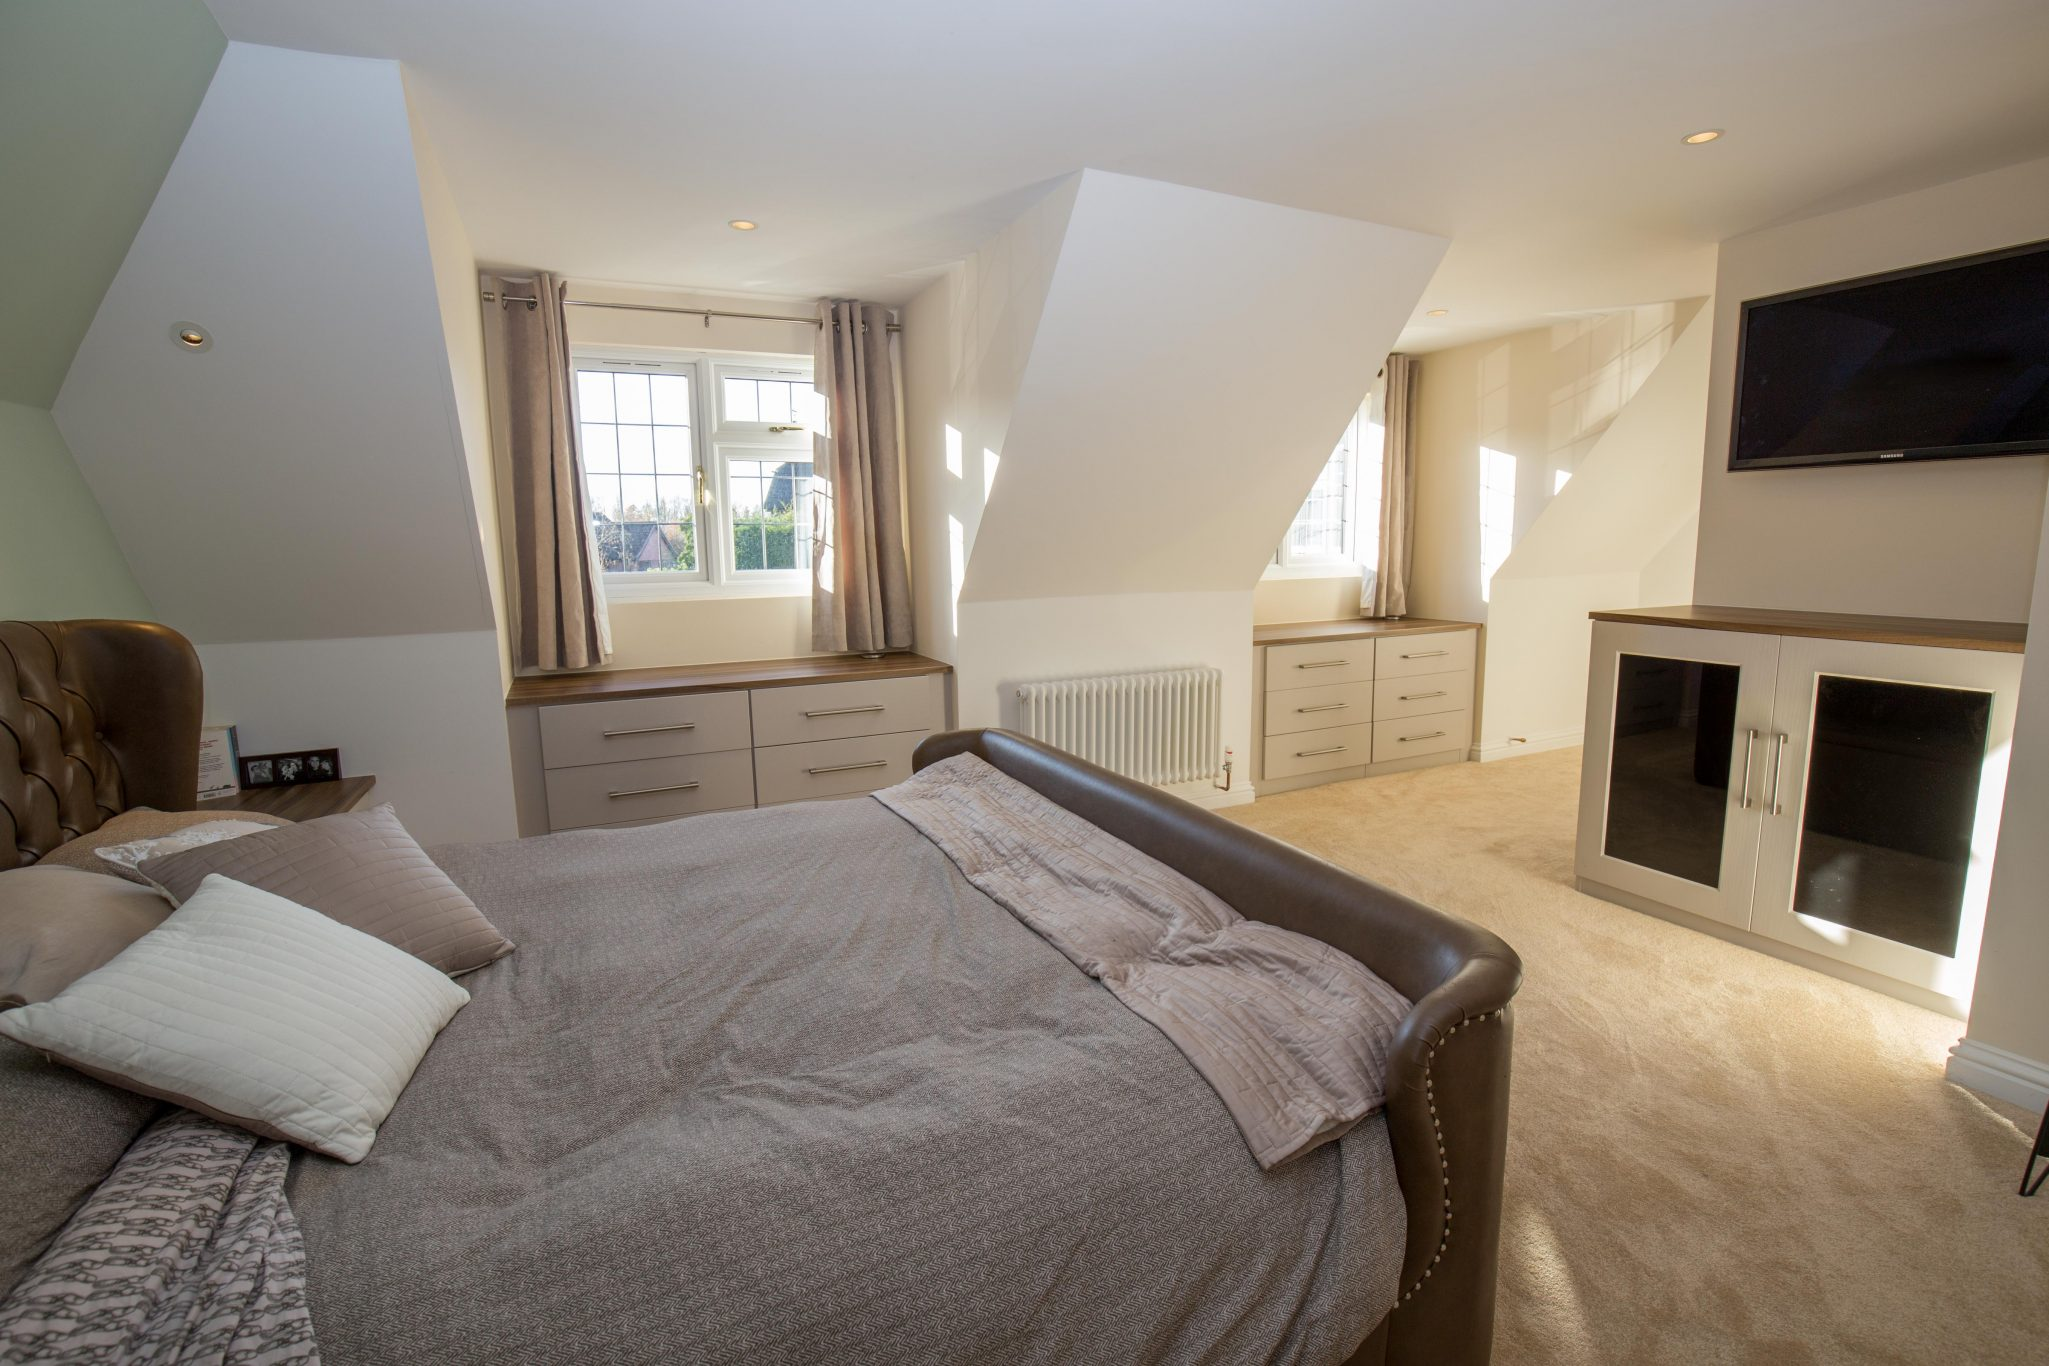 The Project The project requested by the client was to construct a new loft conversion over an existing ground floor extention to form a master bedroom and ensuite adjacent to the…